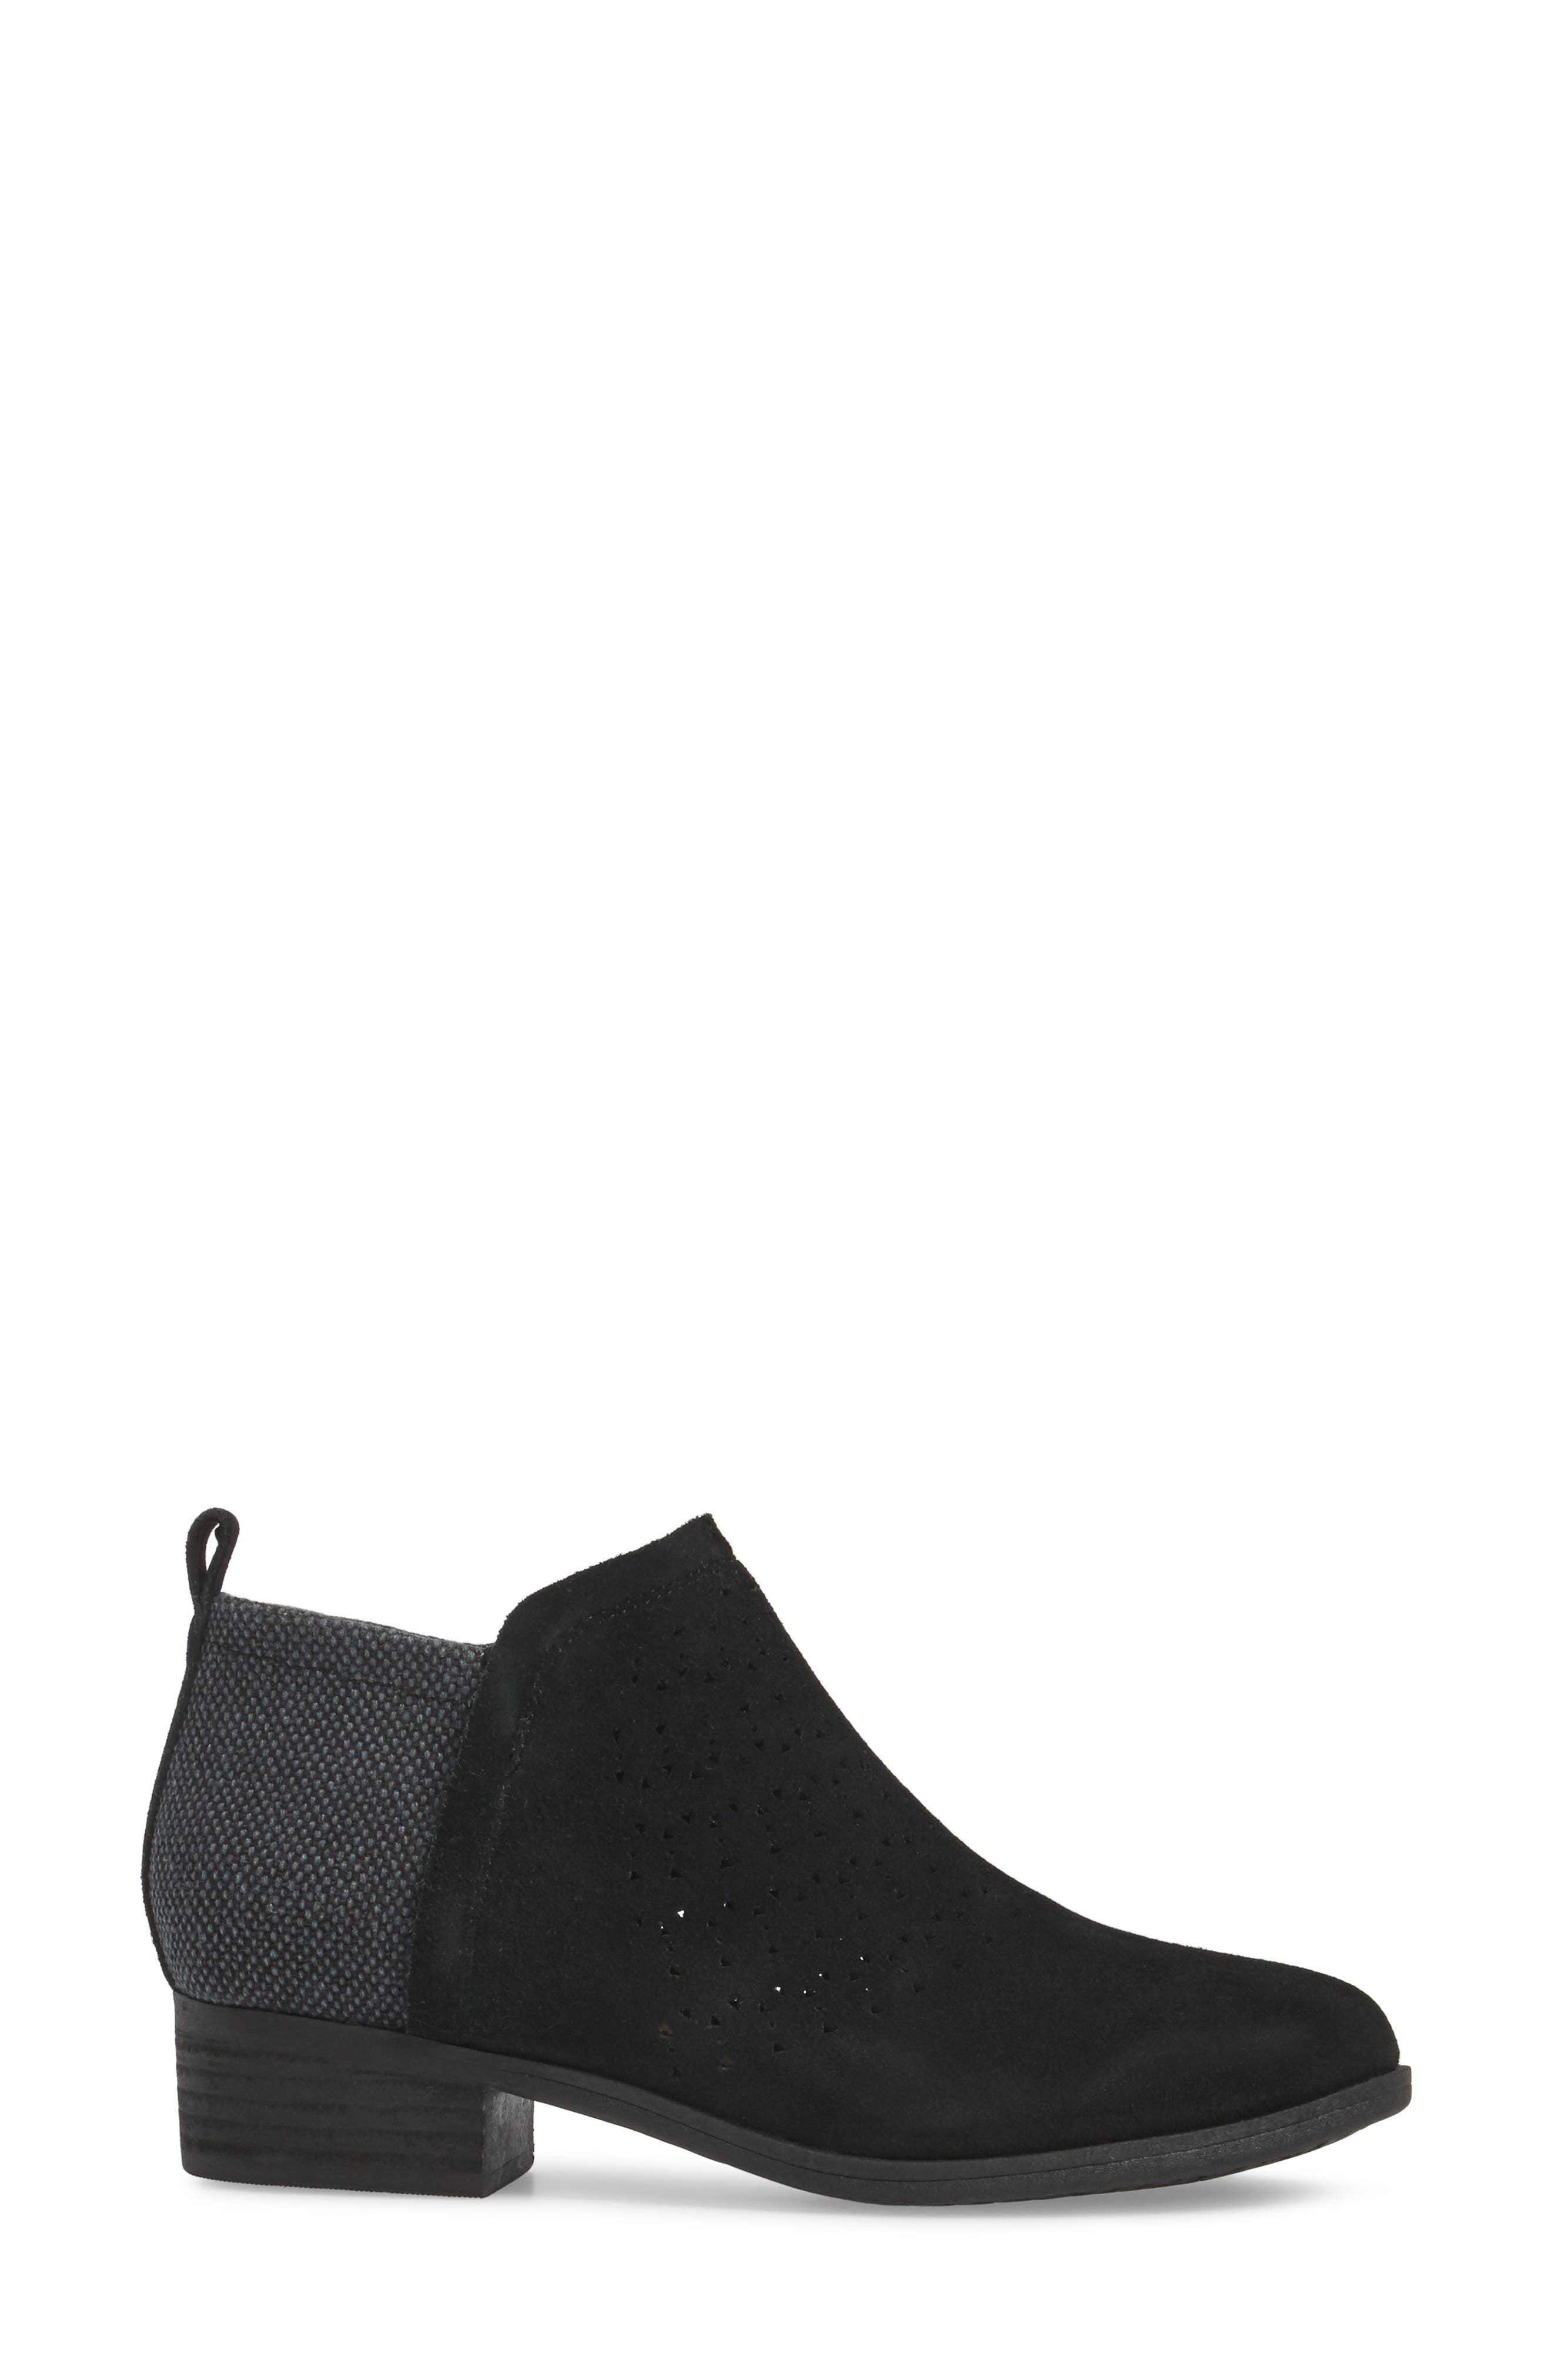 Deia Zip Bootie,                             Alternate thumbnail 24, color,